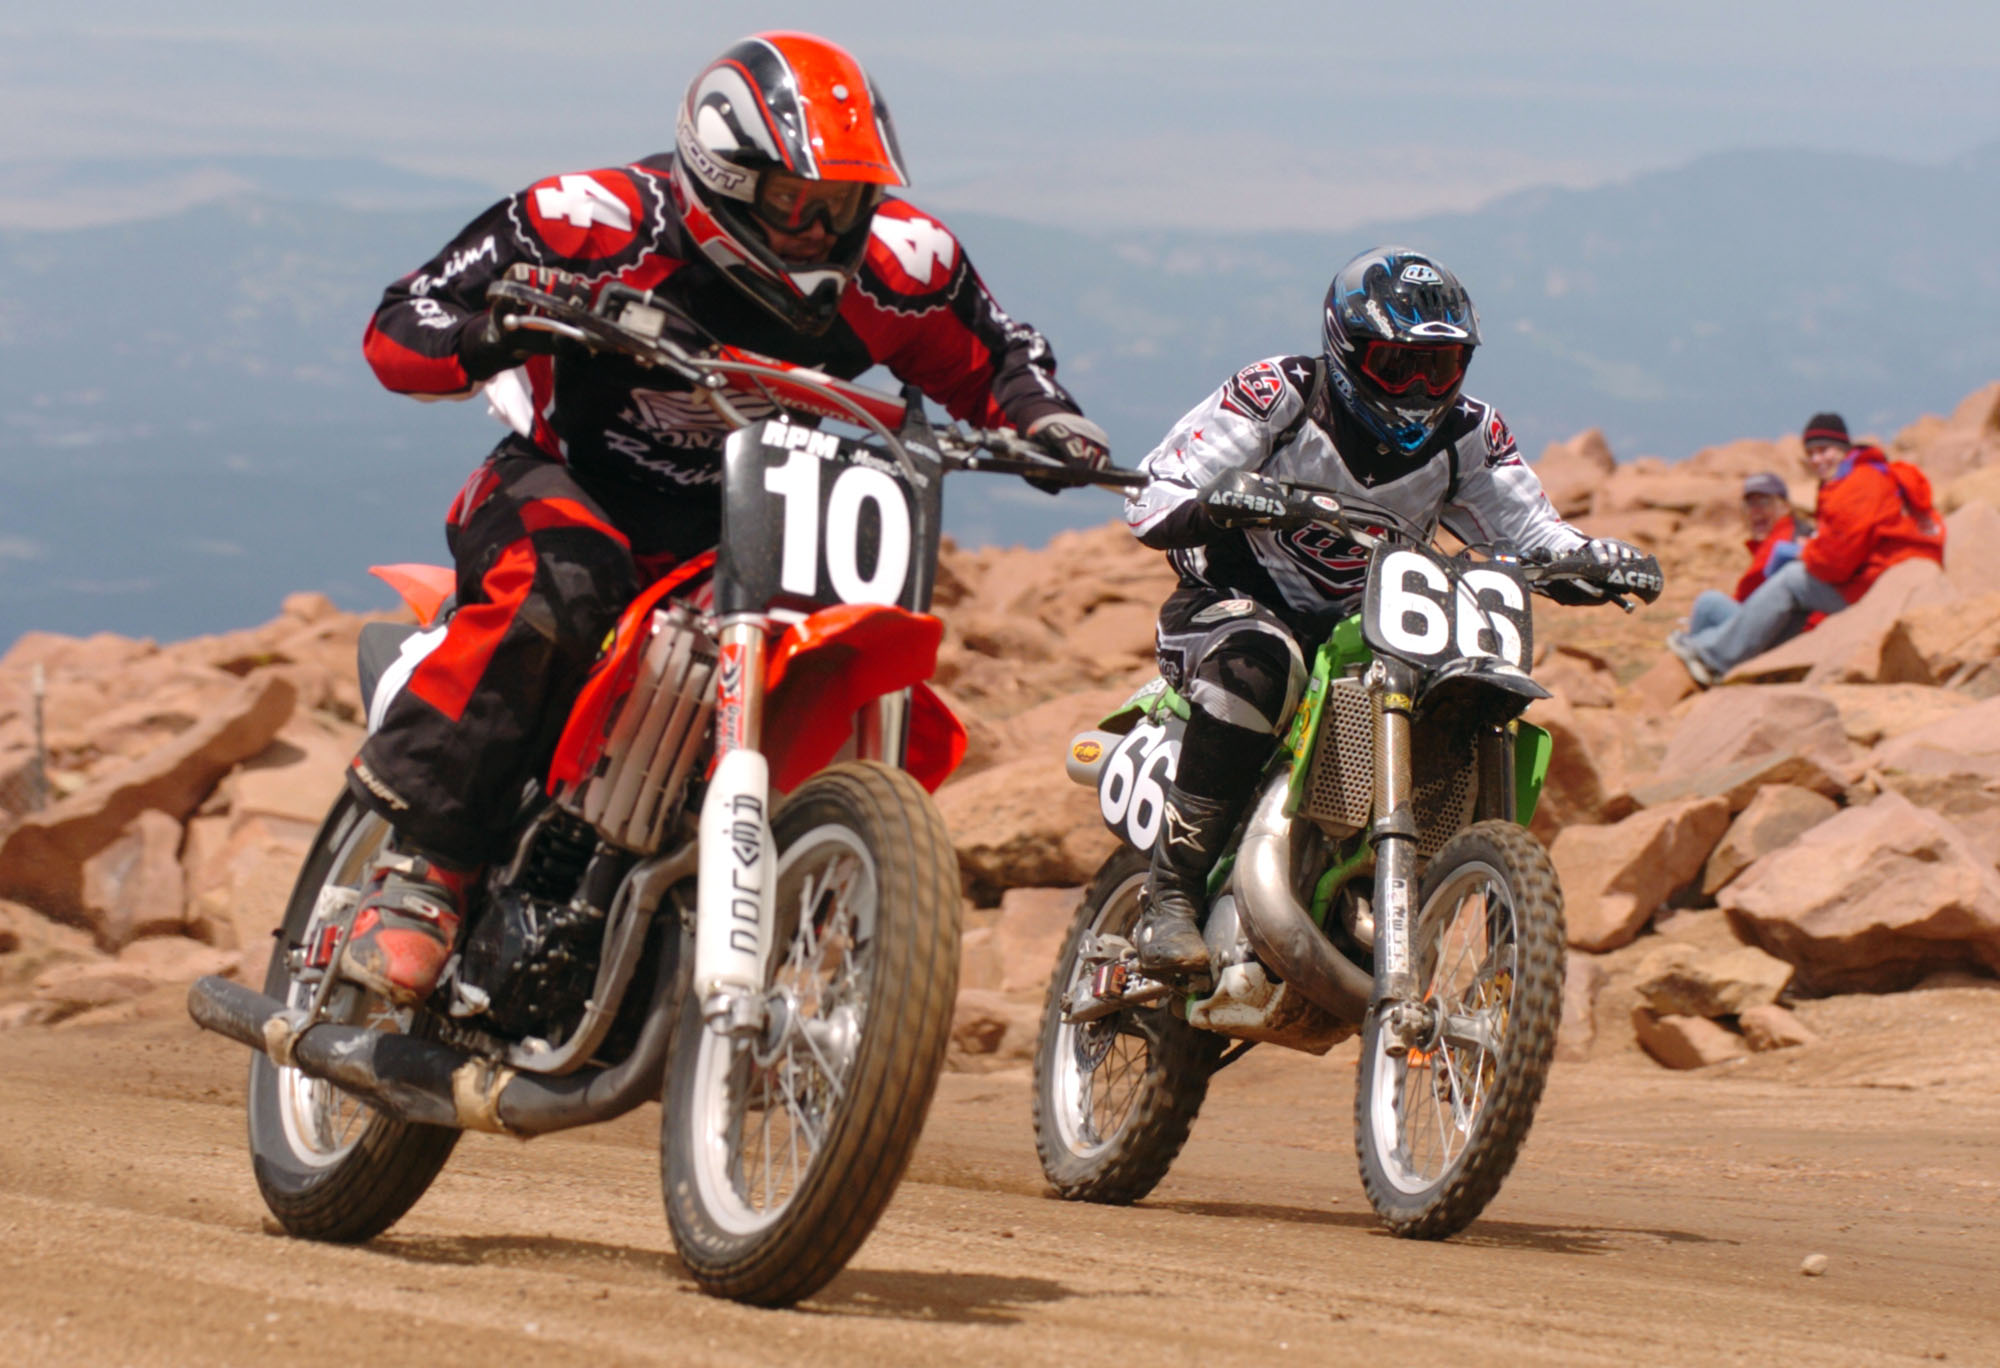 In this June 2004 file photo, Teague Sawyer, left, races to the finish line with Mark Woodward in the 500cc motorcyle category of the 82nd Pikes Peak International Hill Climb near Manitou Springs, Colo.